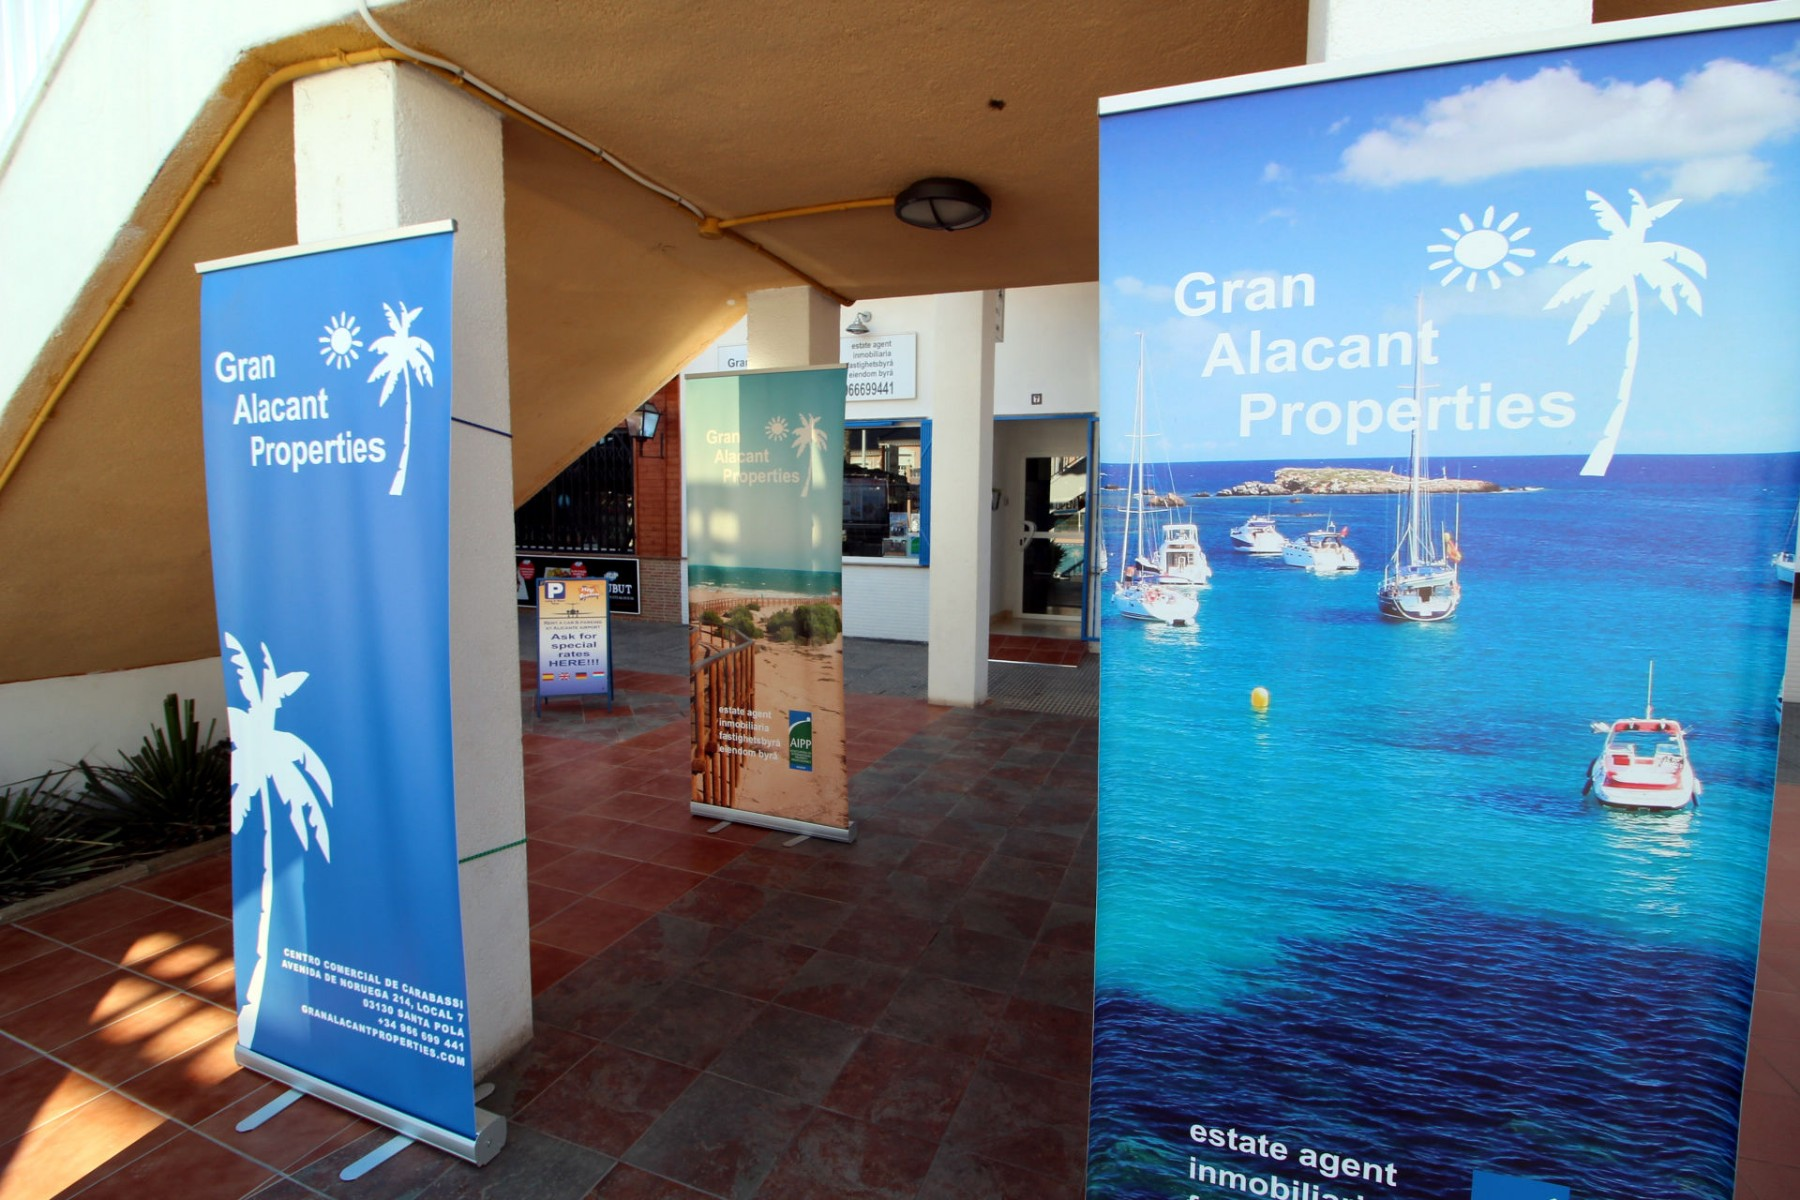 Gran Alacant Properties office terrace with banners